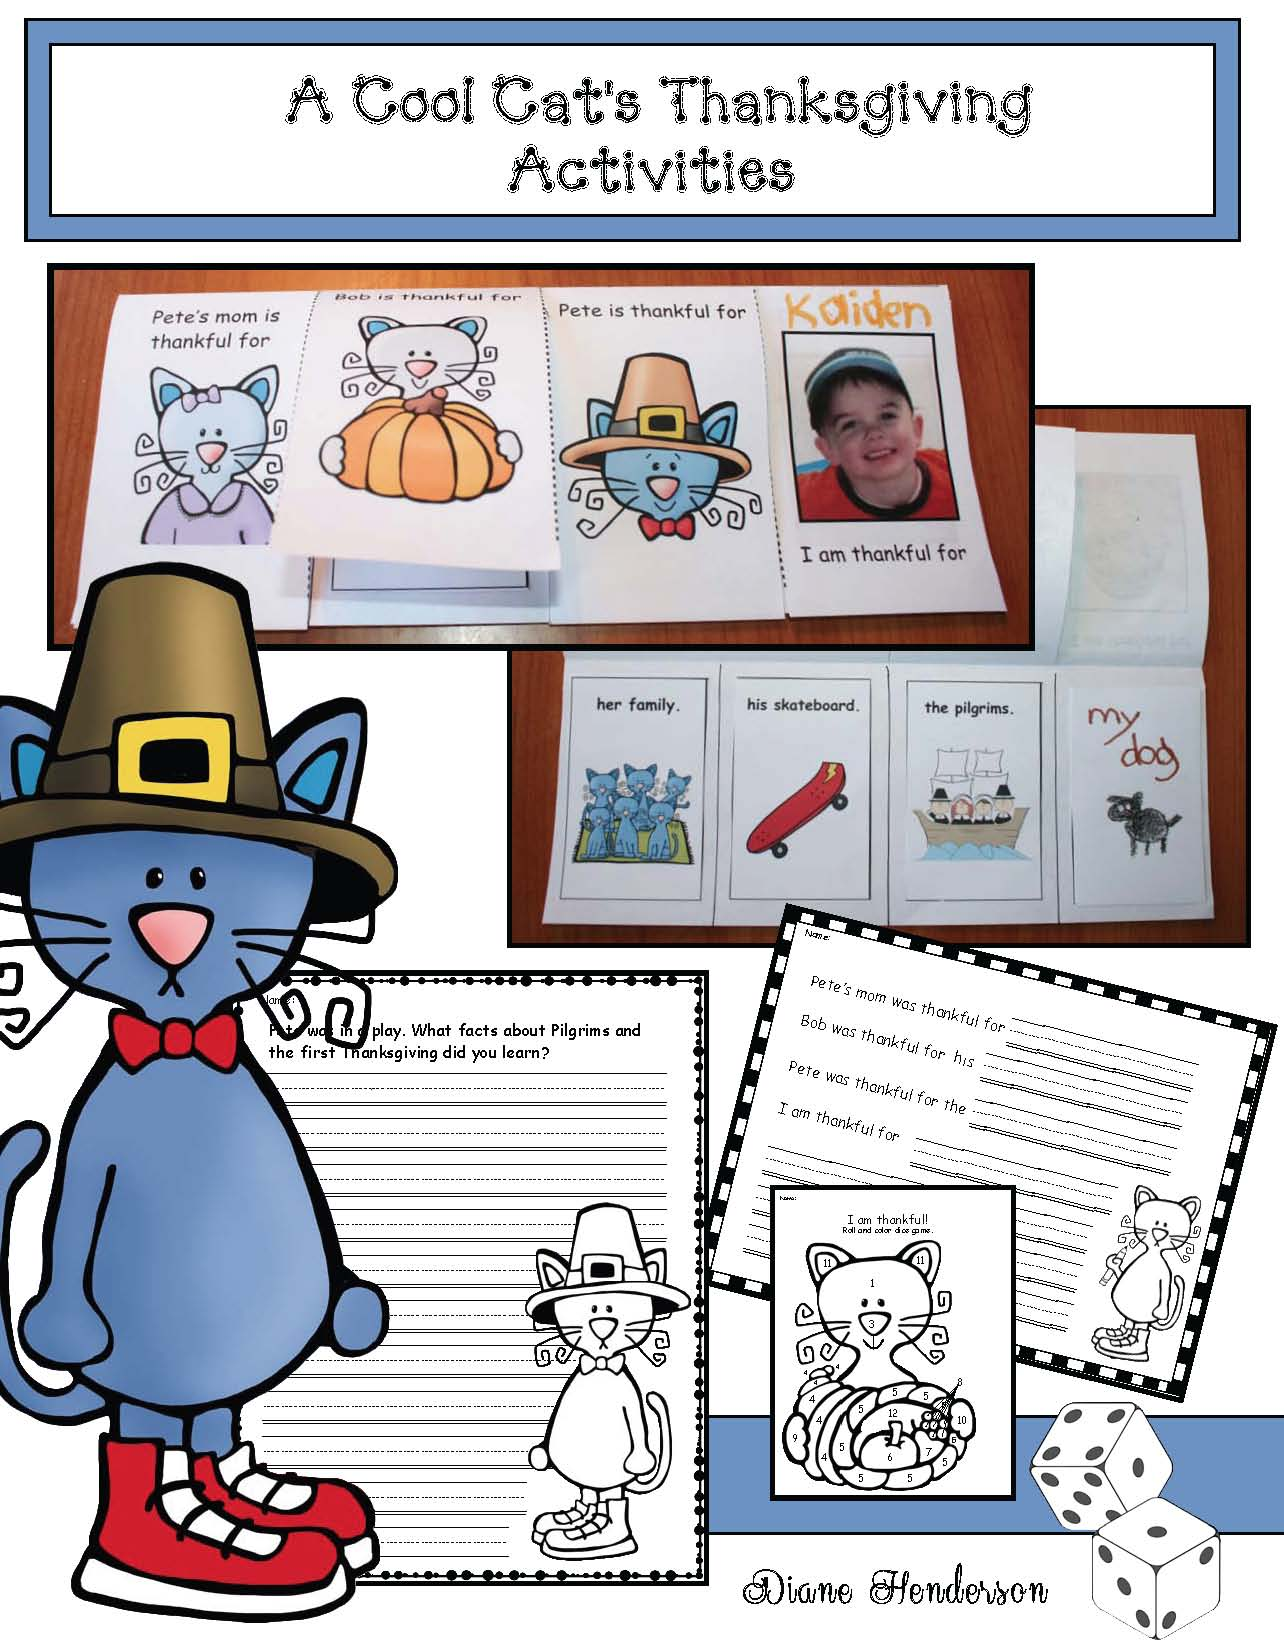 pette the cat activities, pete the cat and the first thanksgiving, thanksgiving activities, thanksgiving games, thanksgiving crafts